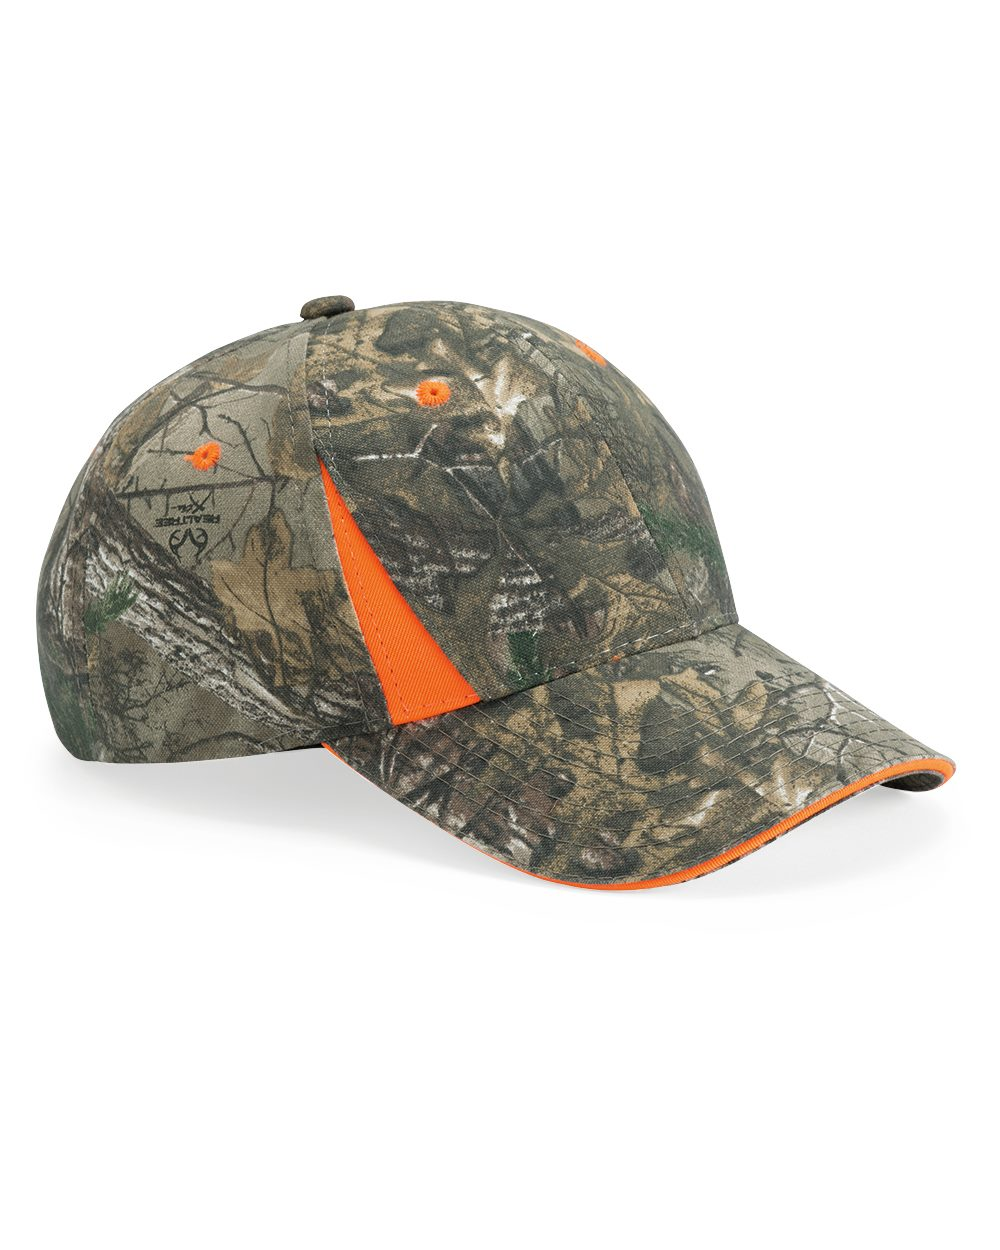 Outdoor Cap CBI305 - Camo Cap With Hi Vis Trim